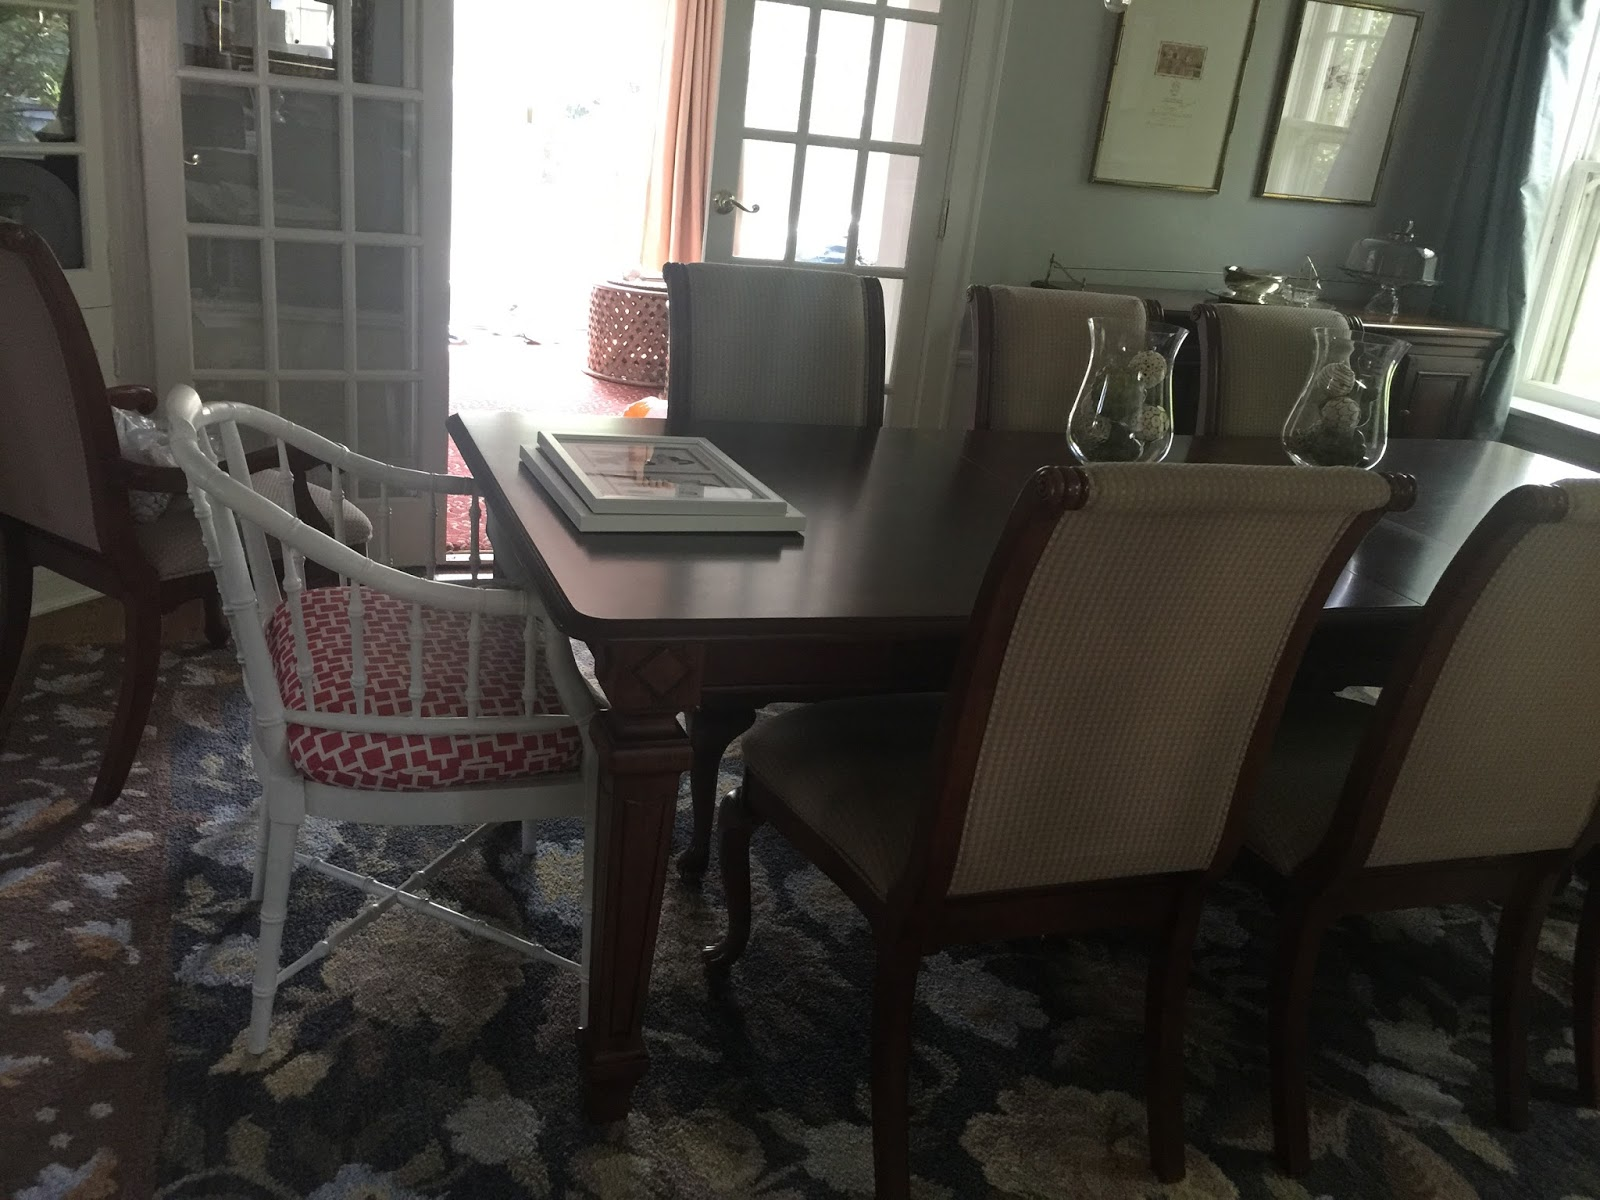 faux bamboo dining room chairs home with keki and i was able to sell all 6 of these chairs on a virtual garage sale site so i could place my new chairs here they are in their new home but